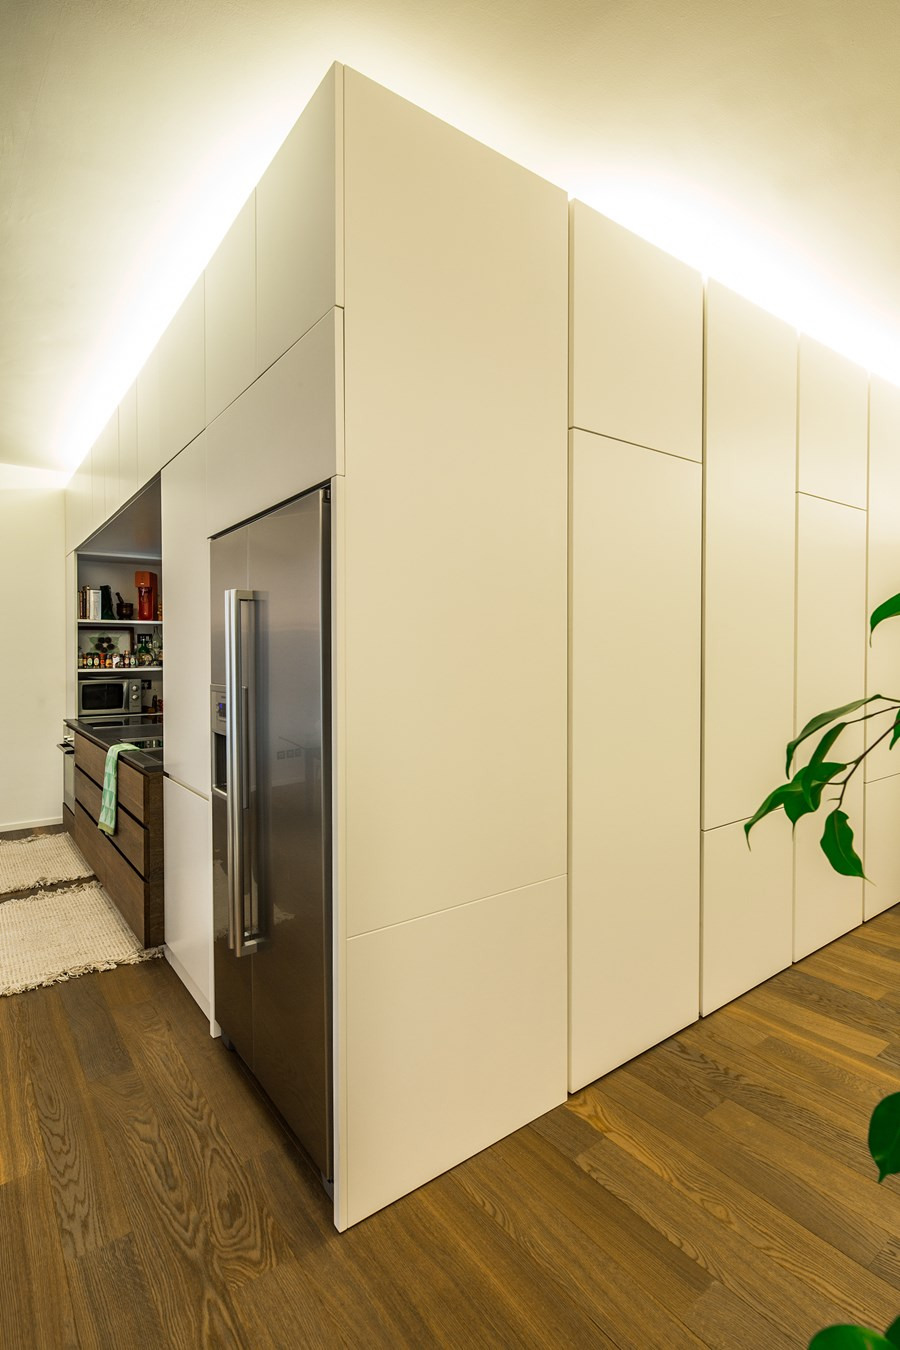 CST Refurbishment and extension by Piùerre 06